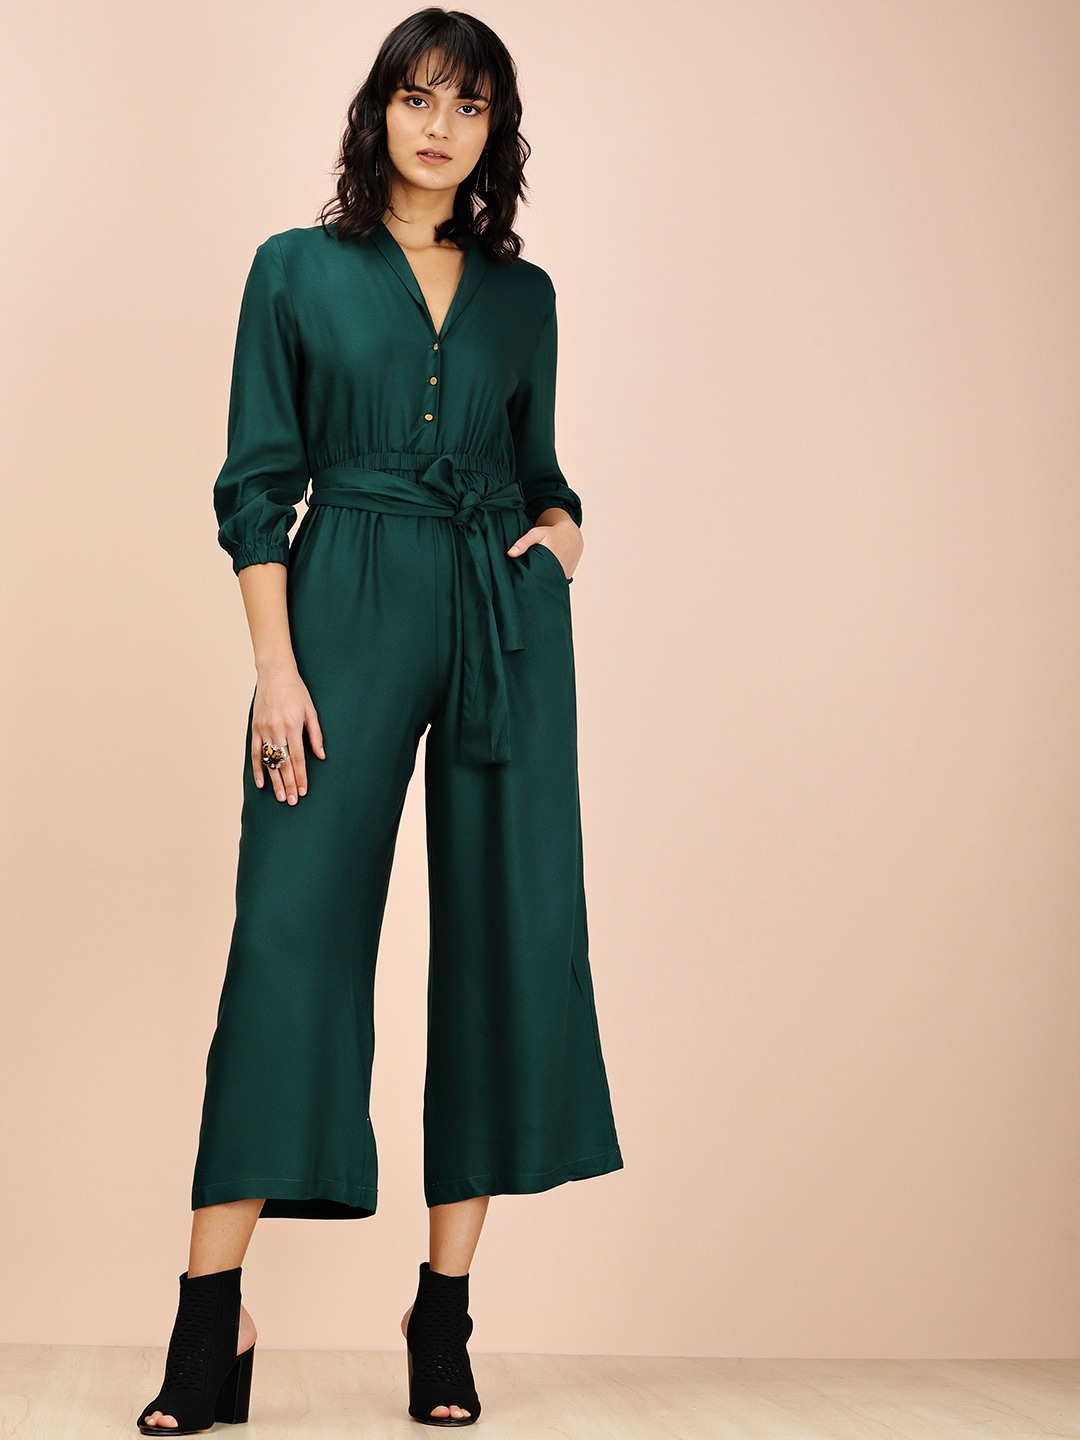 All About You From 'Deepika Padukone ' Jumpsuit - Deepika ...